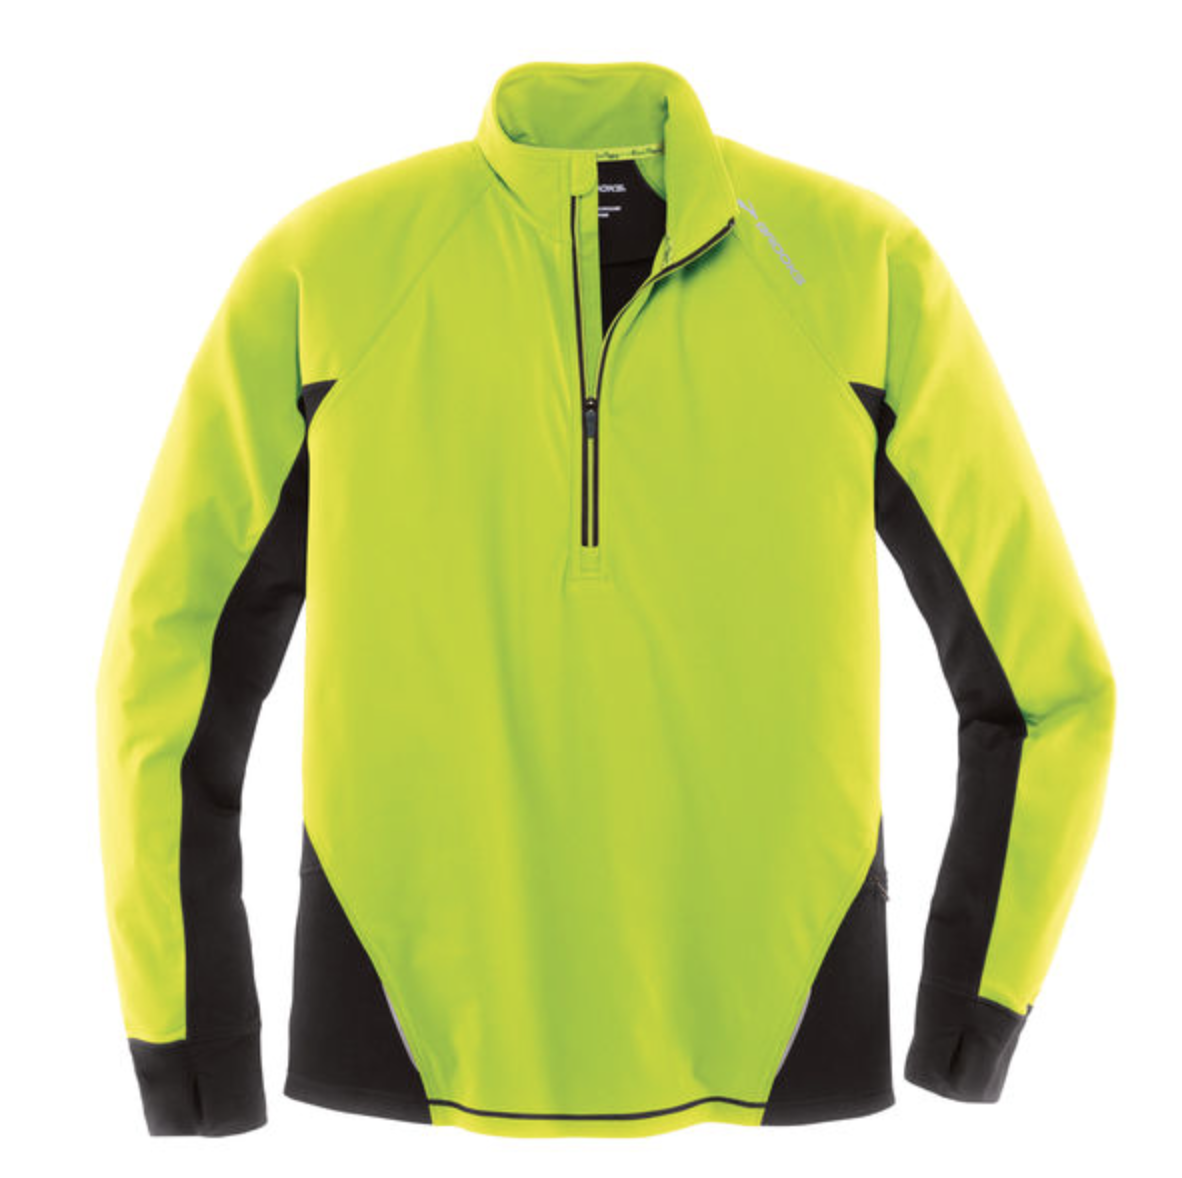 BROOKS MEN'S DRIFT 1/2 ZIP   Windproof, water-resistant, breathable and reflective! CLICK TO SHOP >